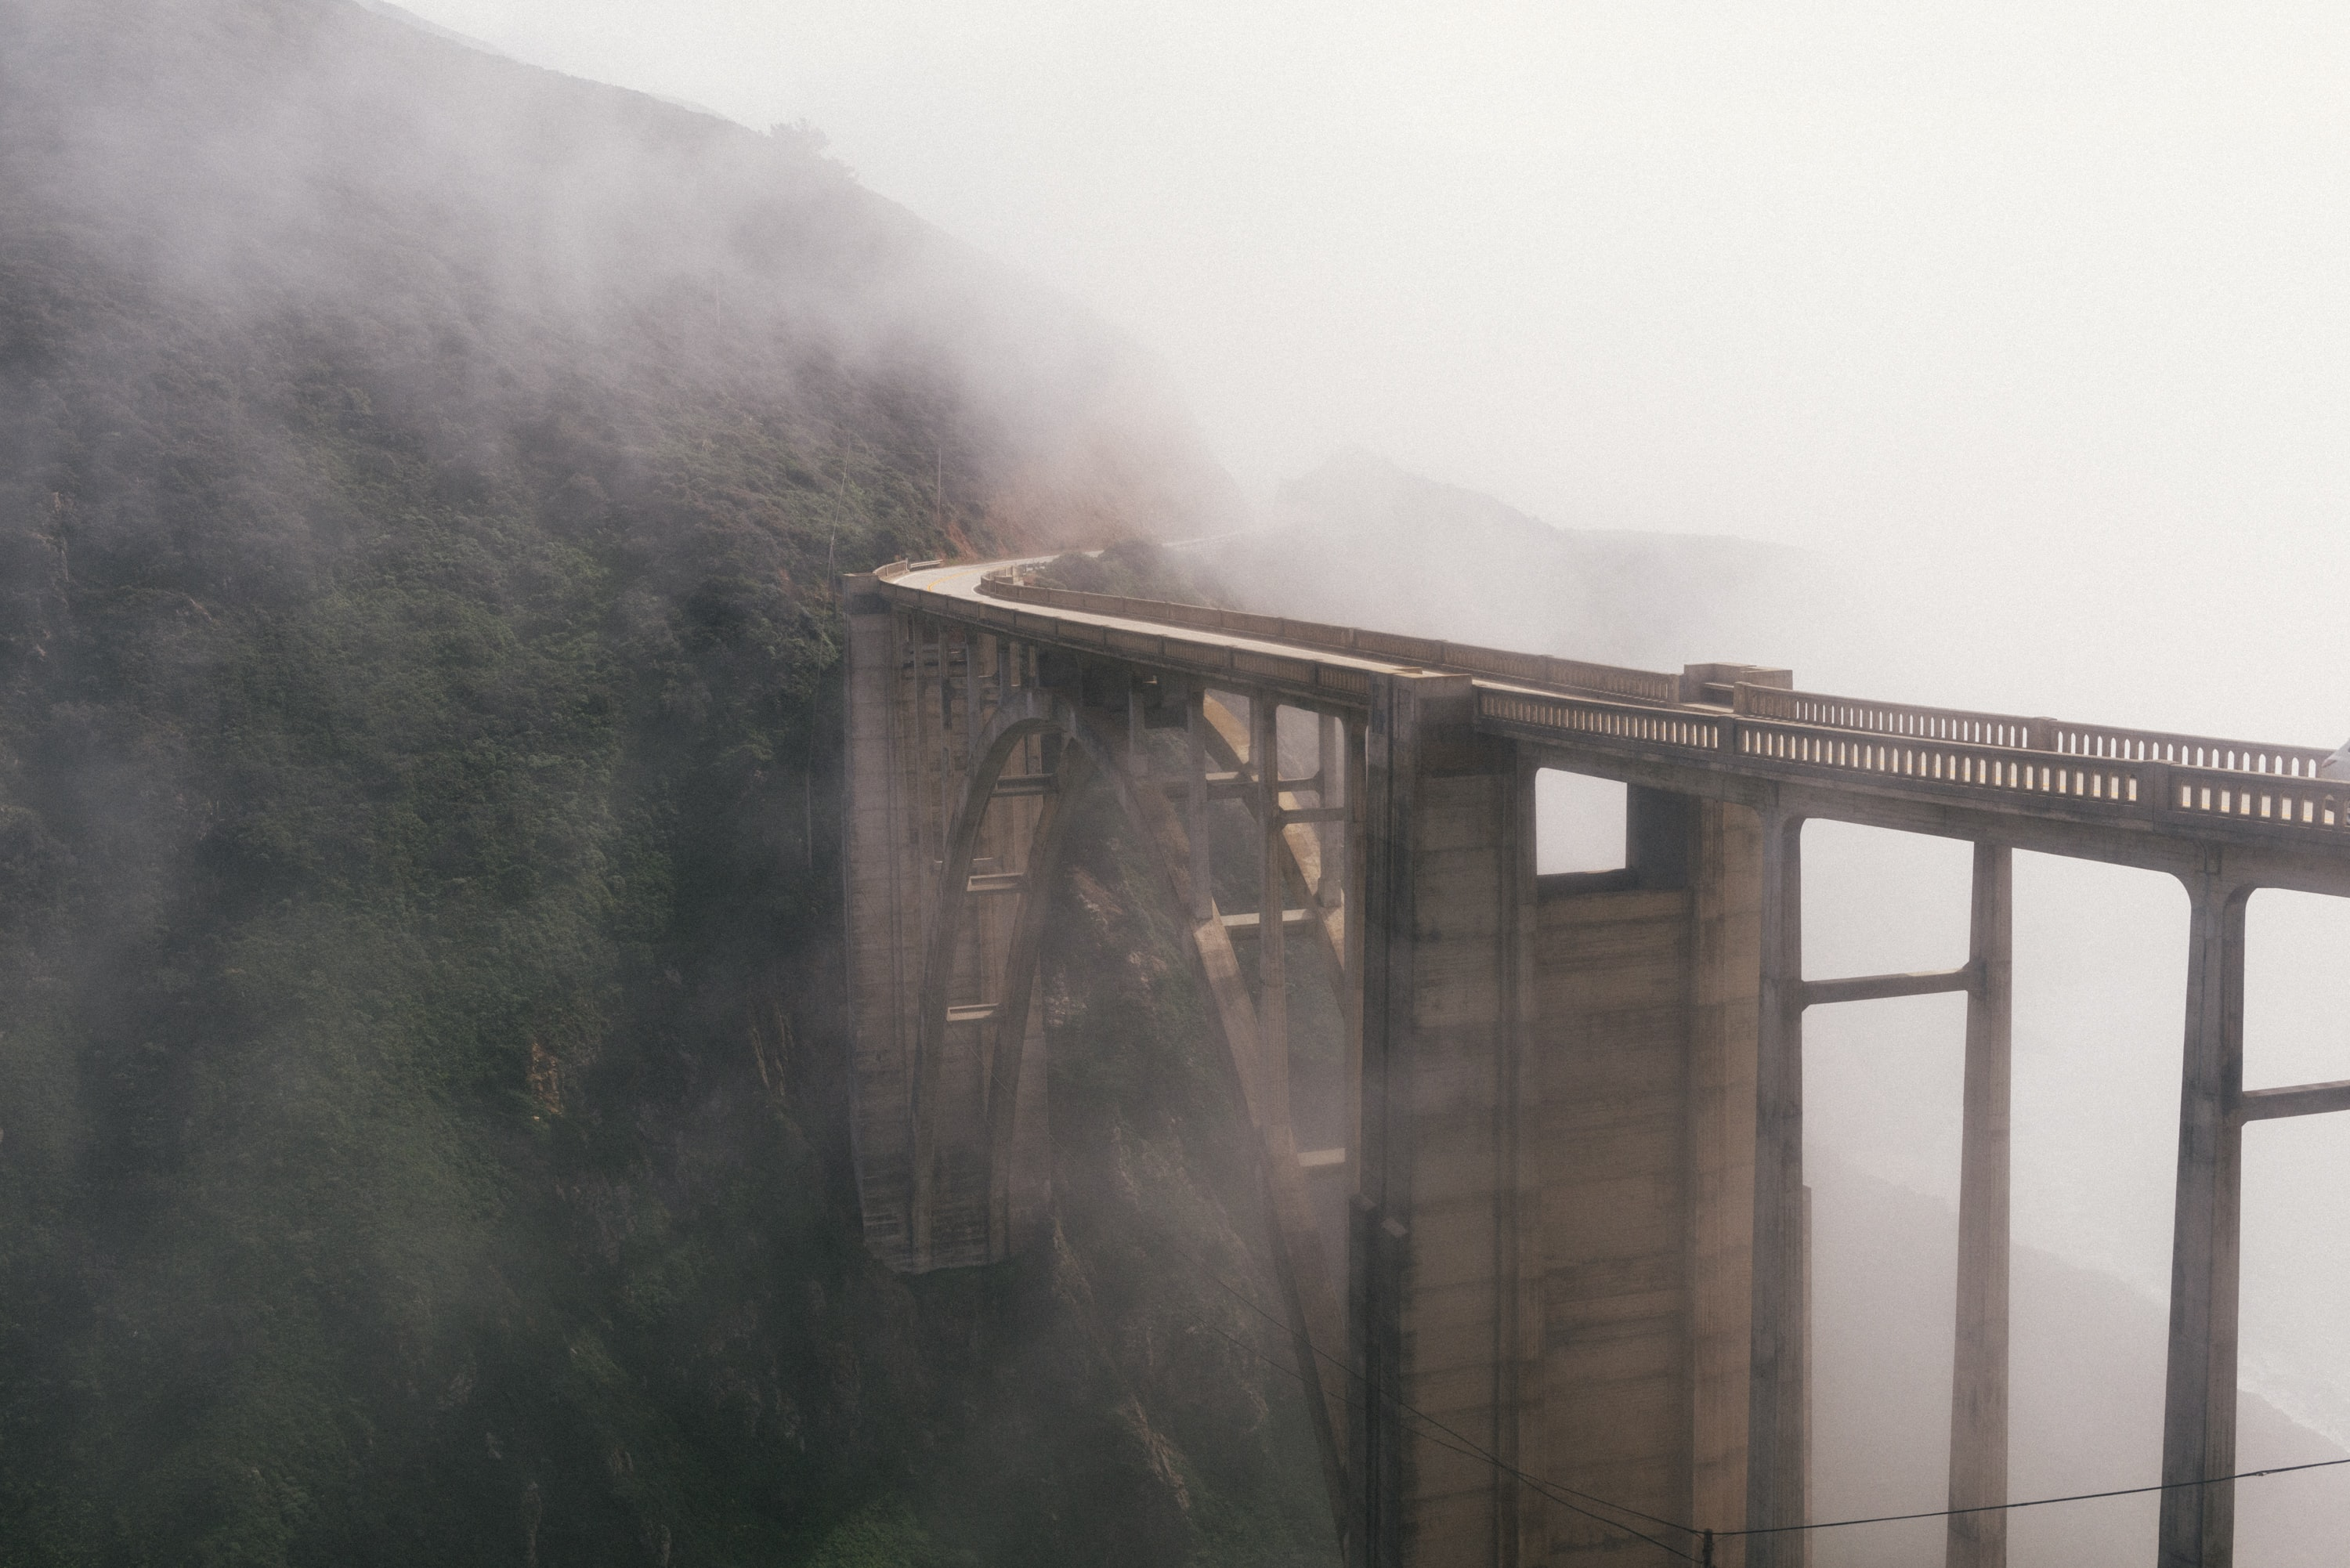 mist and gray bridge near mountain